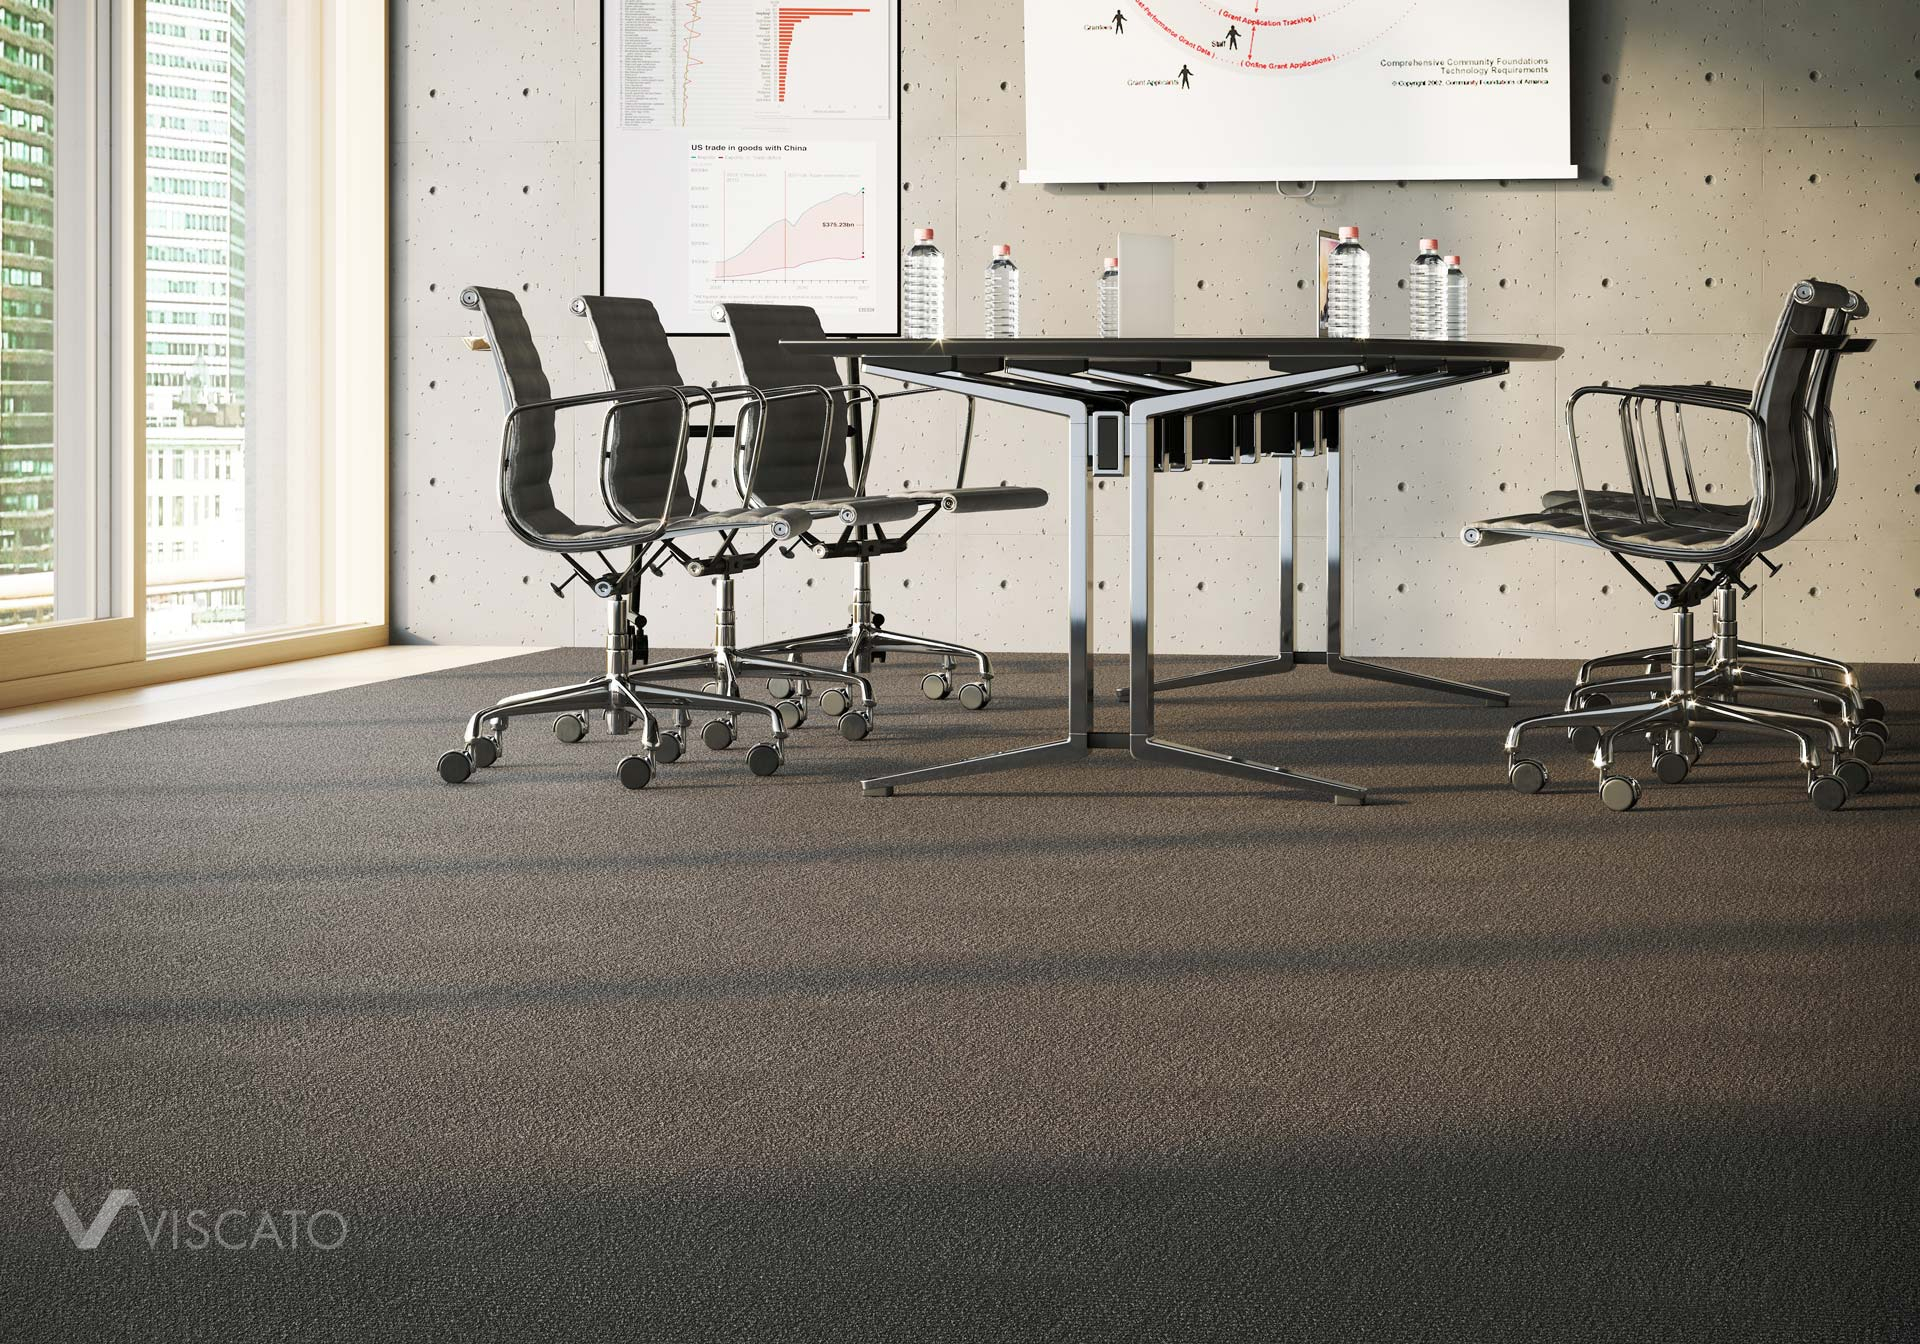 carpet 3D product visualization, Viscato